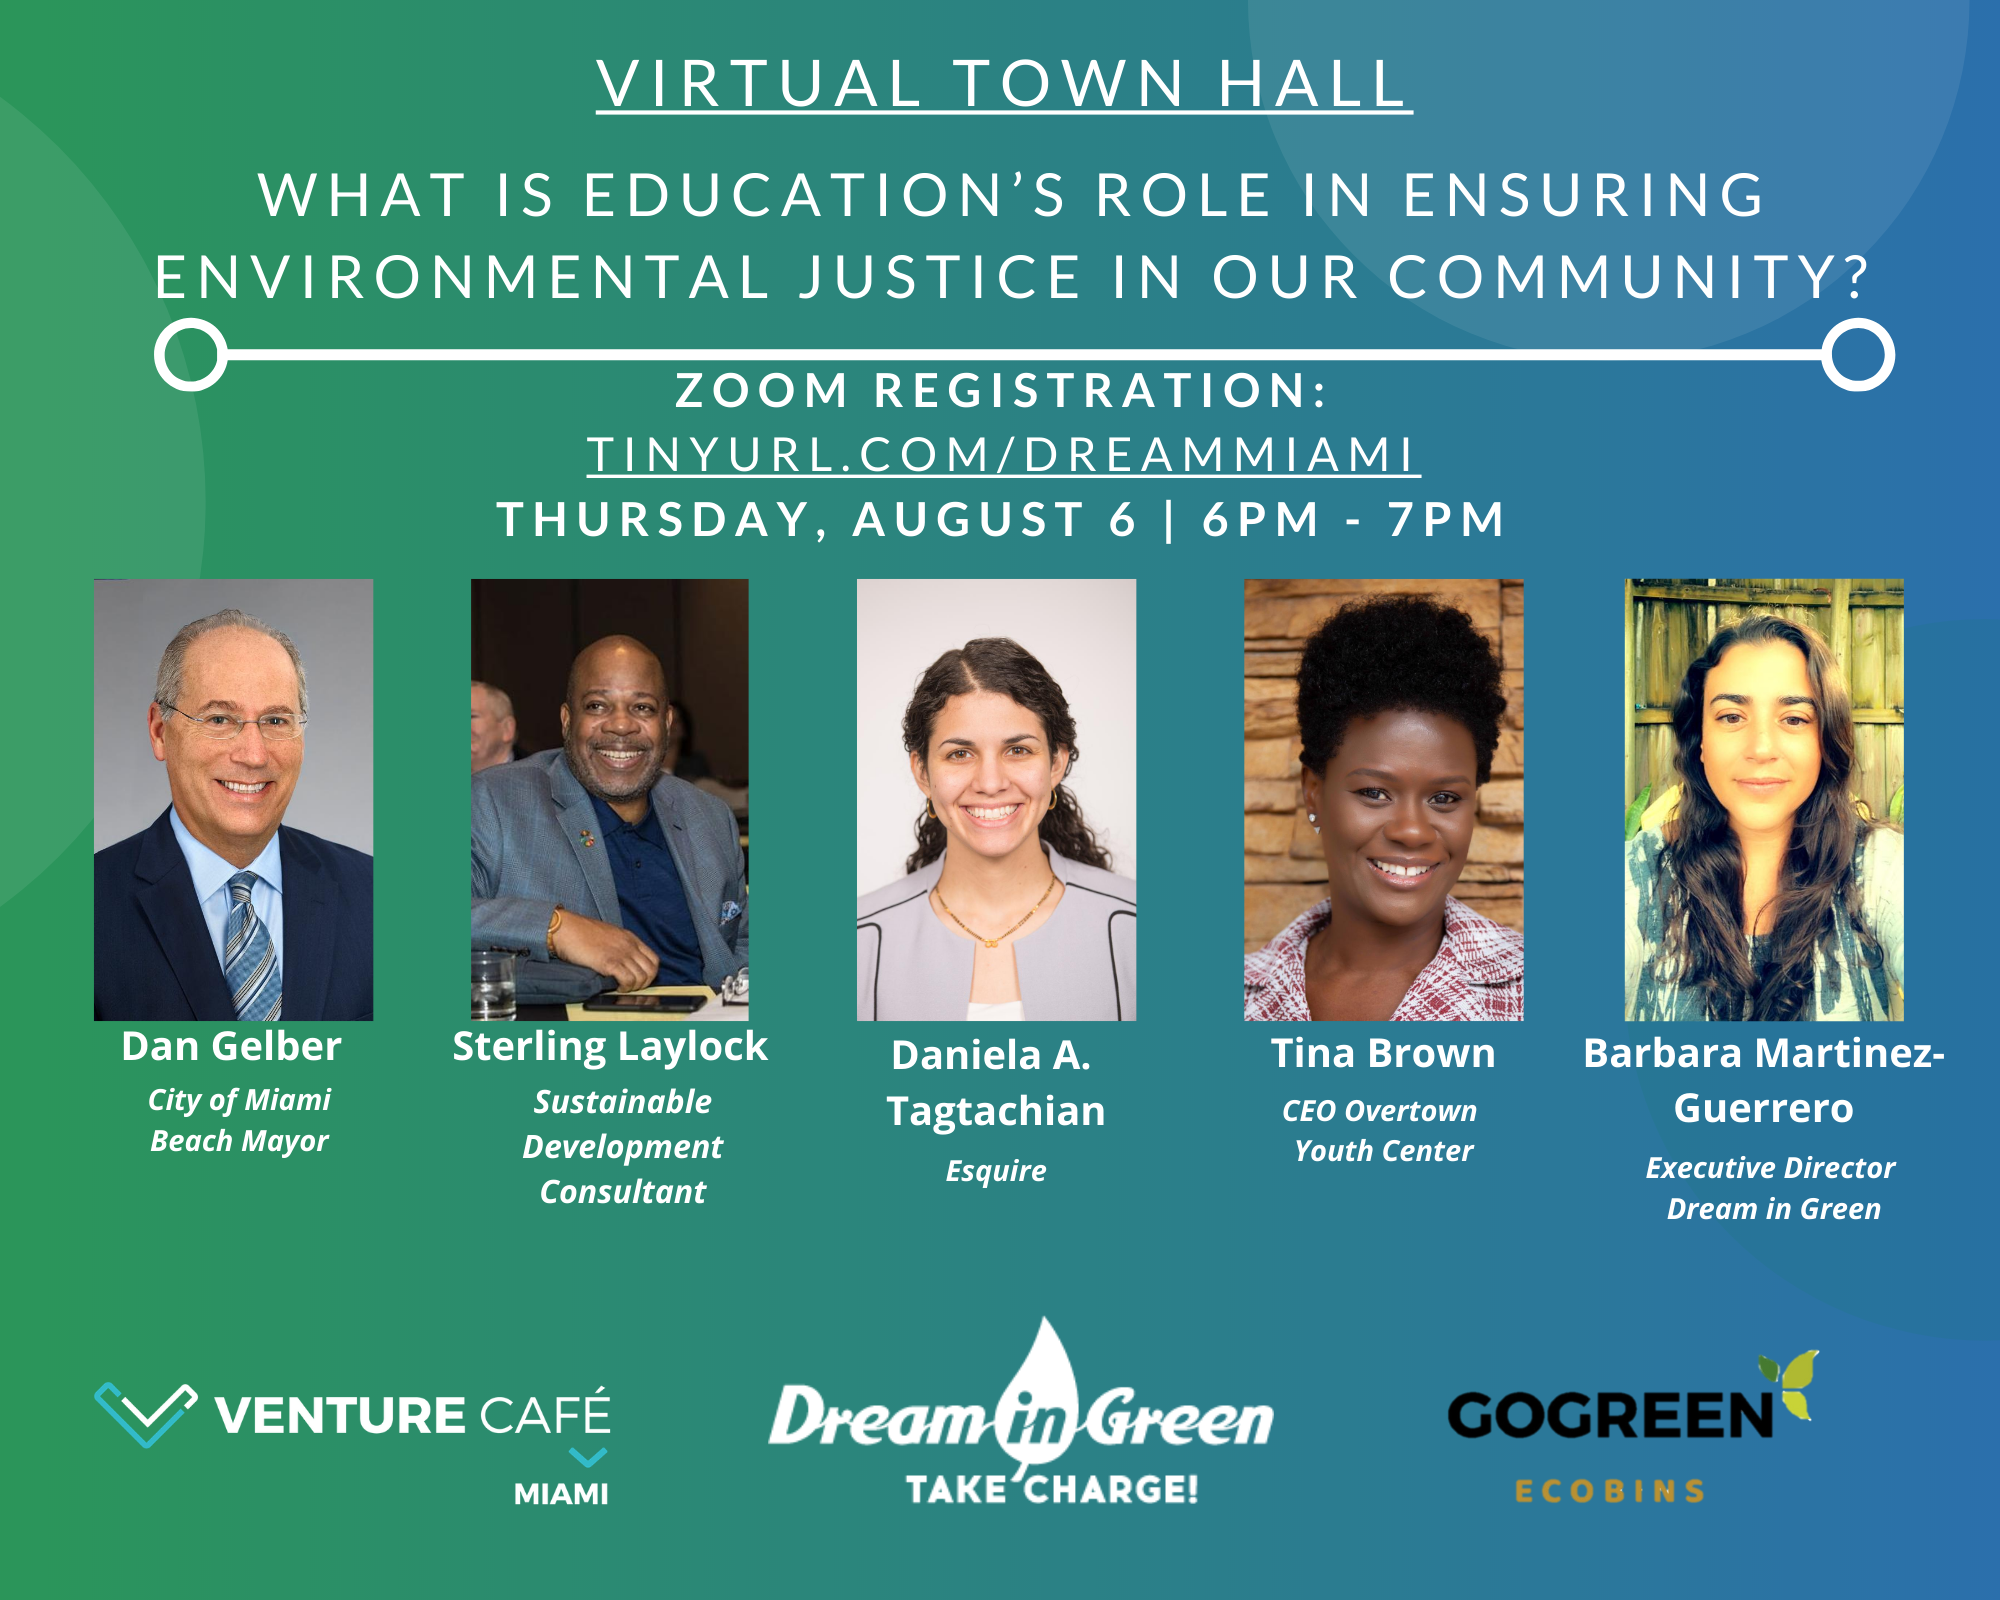 Virtual Town Hall: Education's Role in Environmental Justice